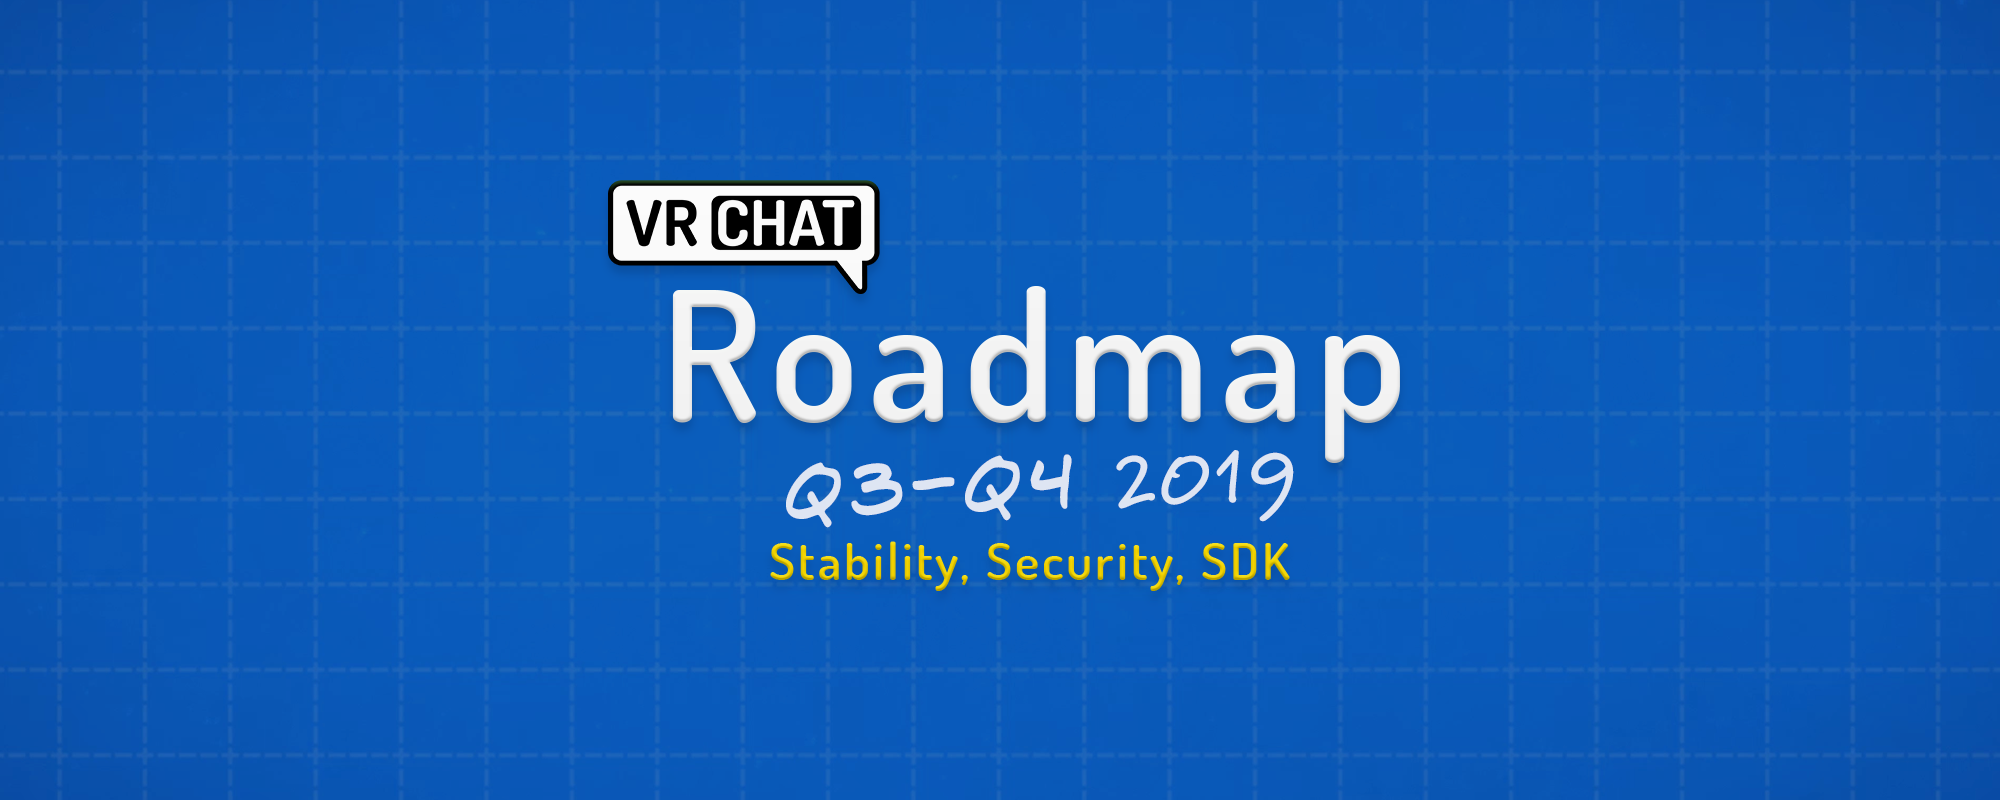 VRChat Roadmap— Stability, Security, and SDK - VRChat - Medium